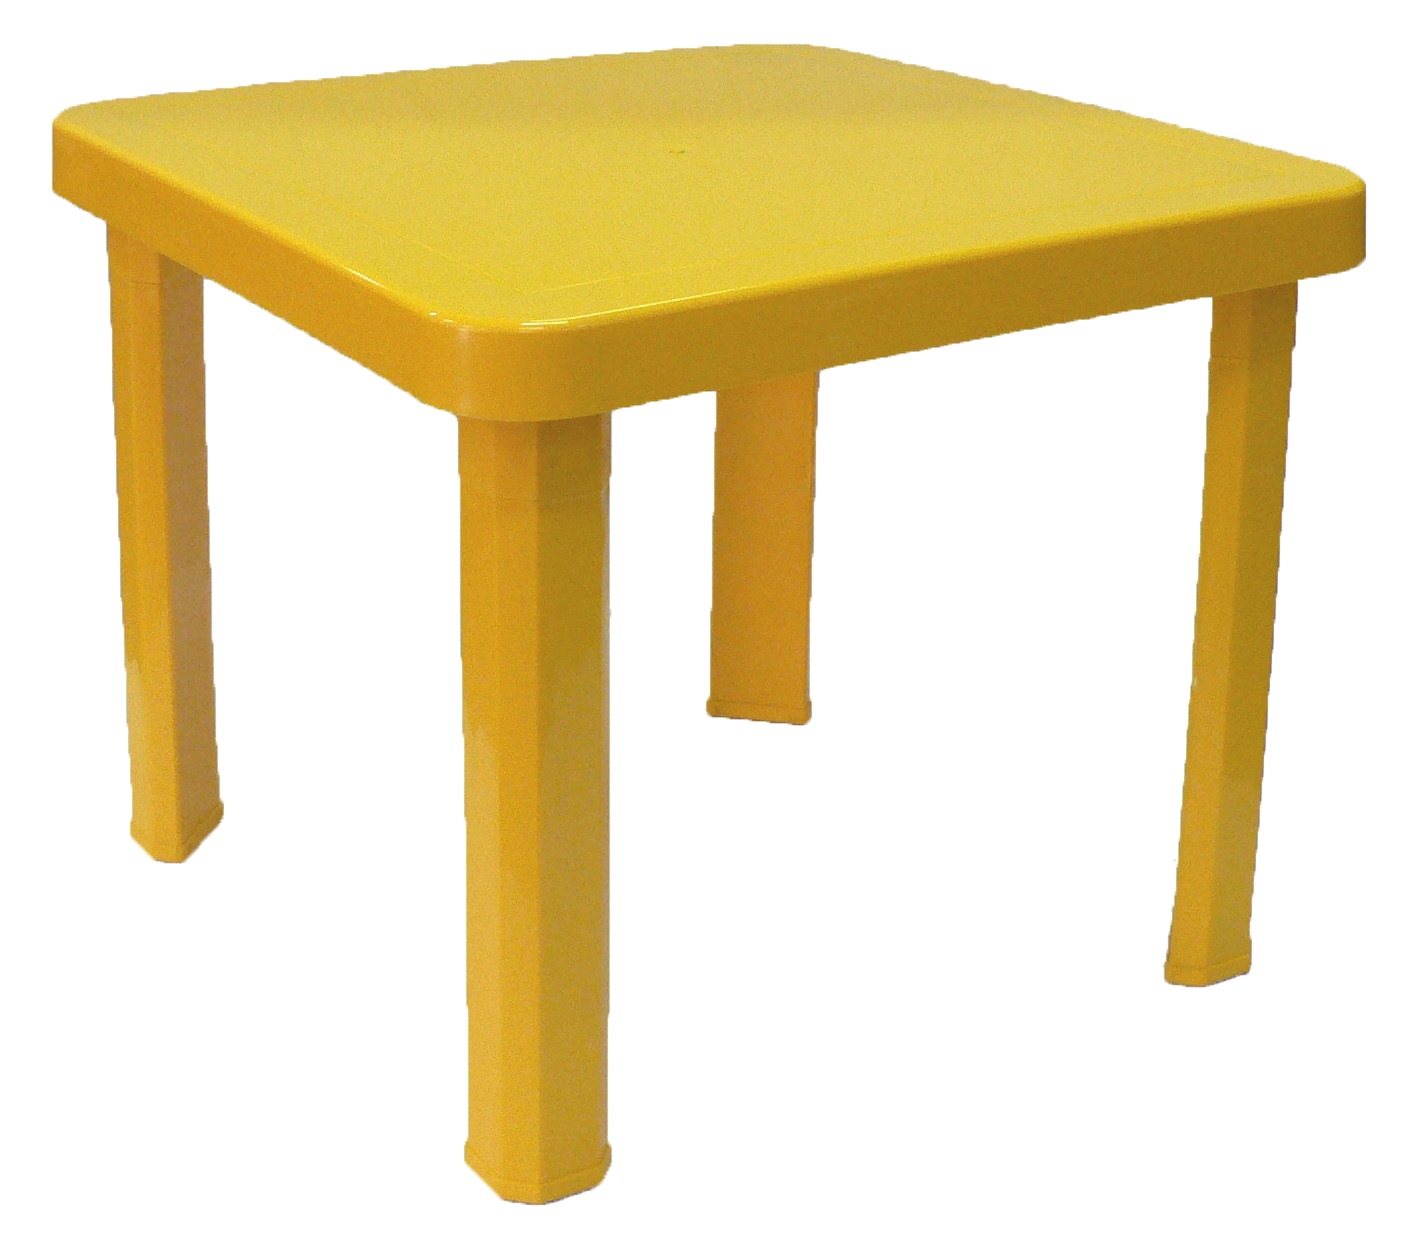 Childrens Plastic Table - Yellow